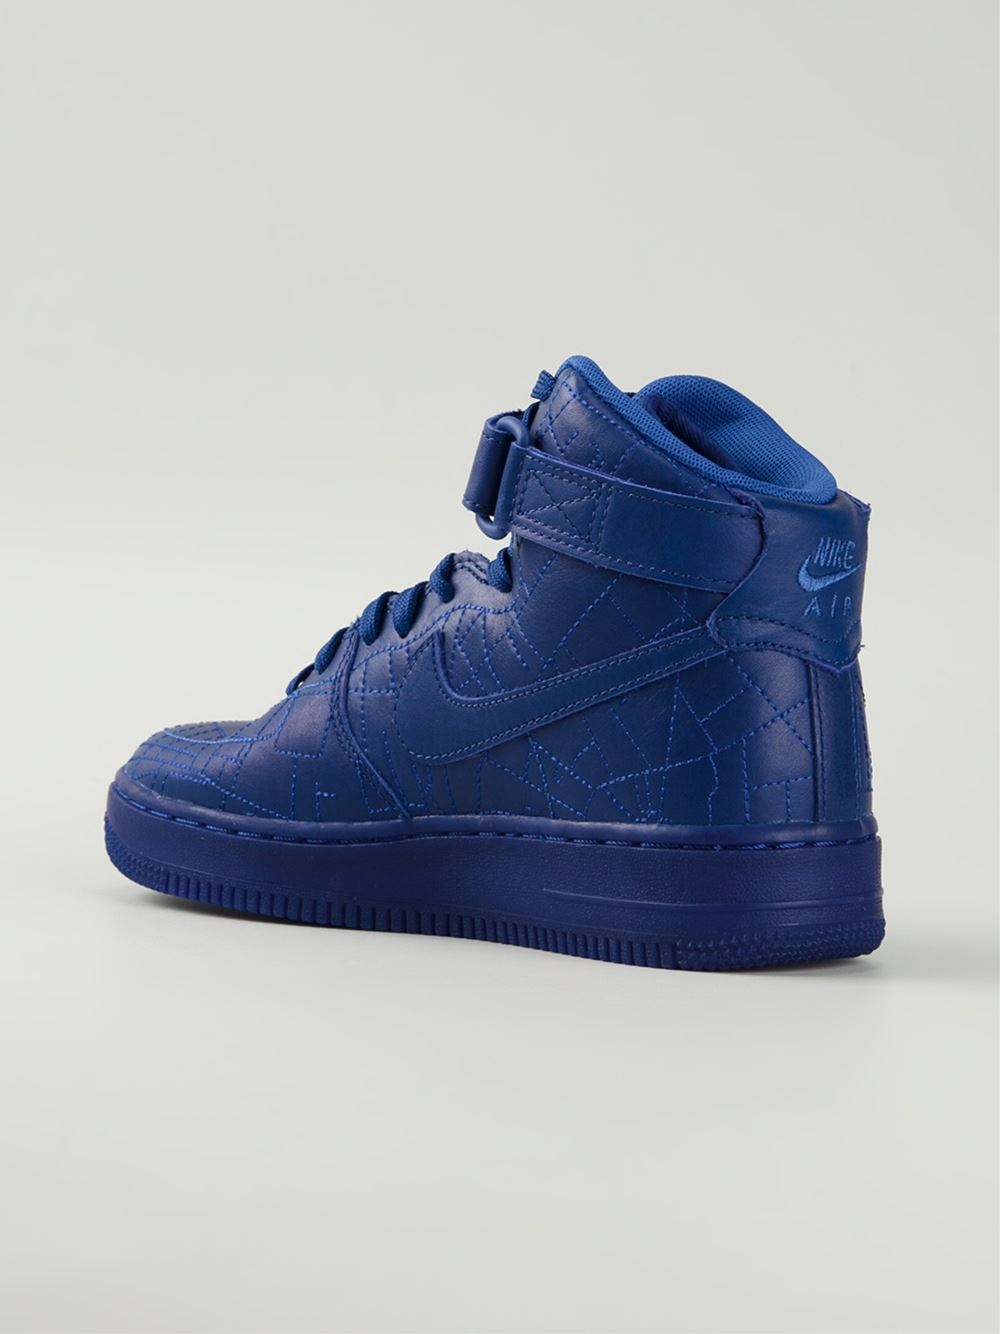 sale retailer d37bb 3330e shopping lyst nike blue air force 1 city collection sneakers paris in blue  for men 7b26f